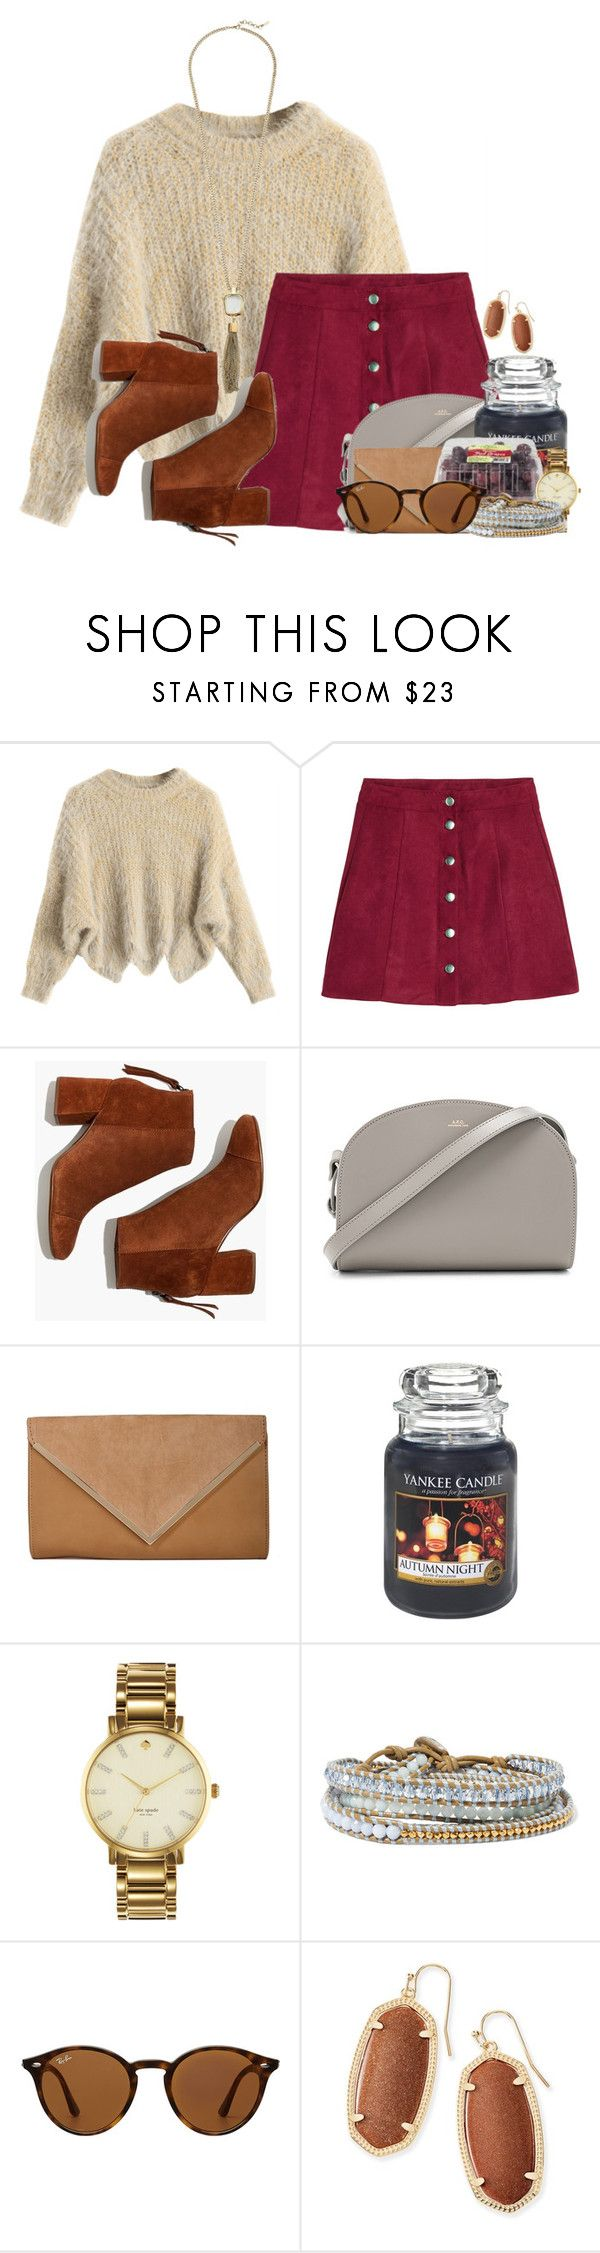 """""""Sweet 16!!"""" by annaewakefield ❤ liked on Polyvore featuring H&M, Madewell, A.P.C., Yankee Candle, Kate Spade, Chan Luu, Ray-Ban, Kendra Scott and Cole Haan"""